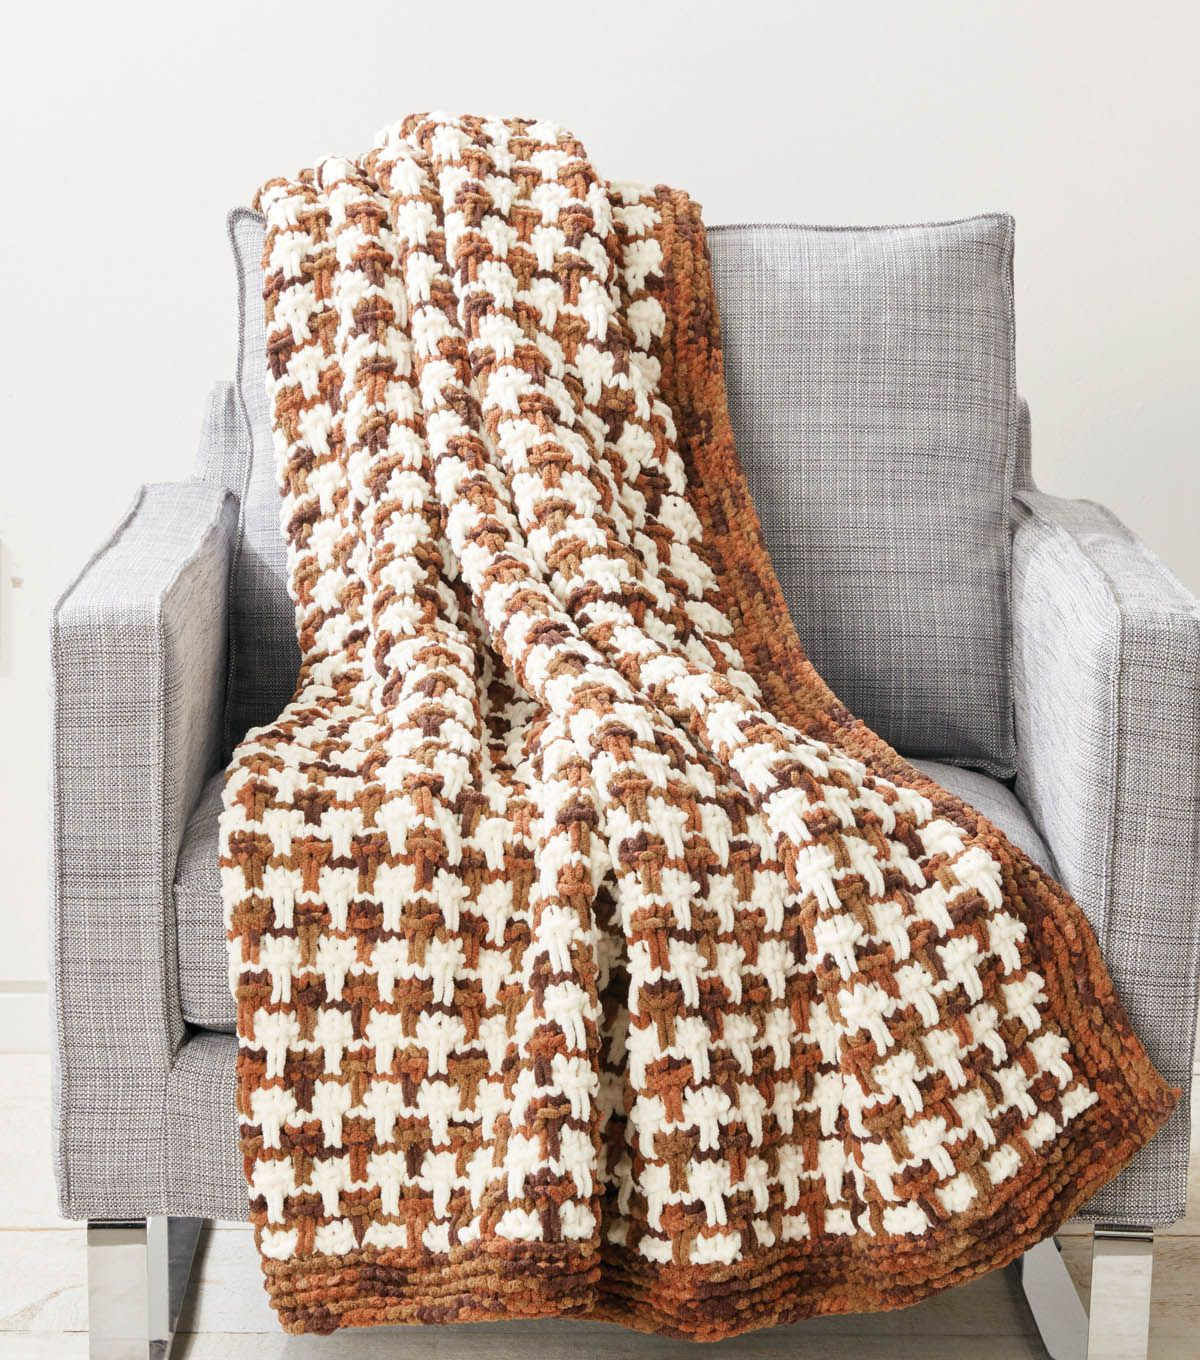 Tweedy Bricks Blanket | Knit with JOANN | Pinterest